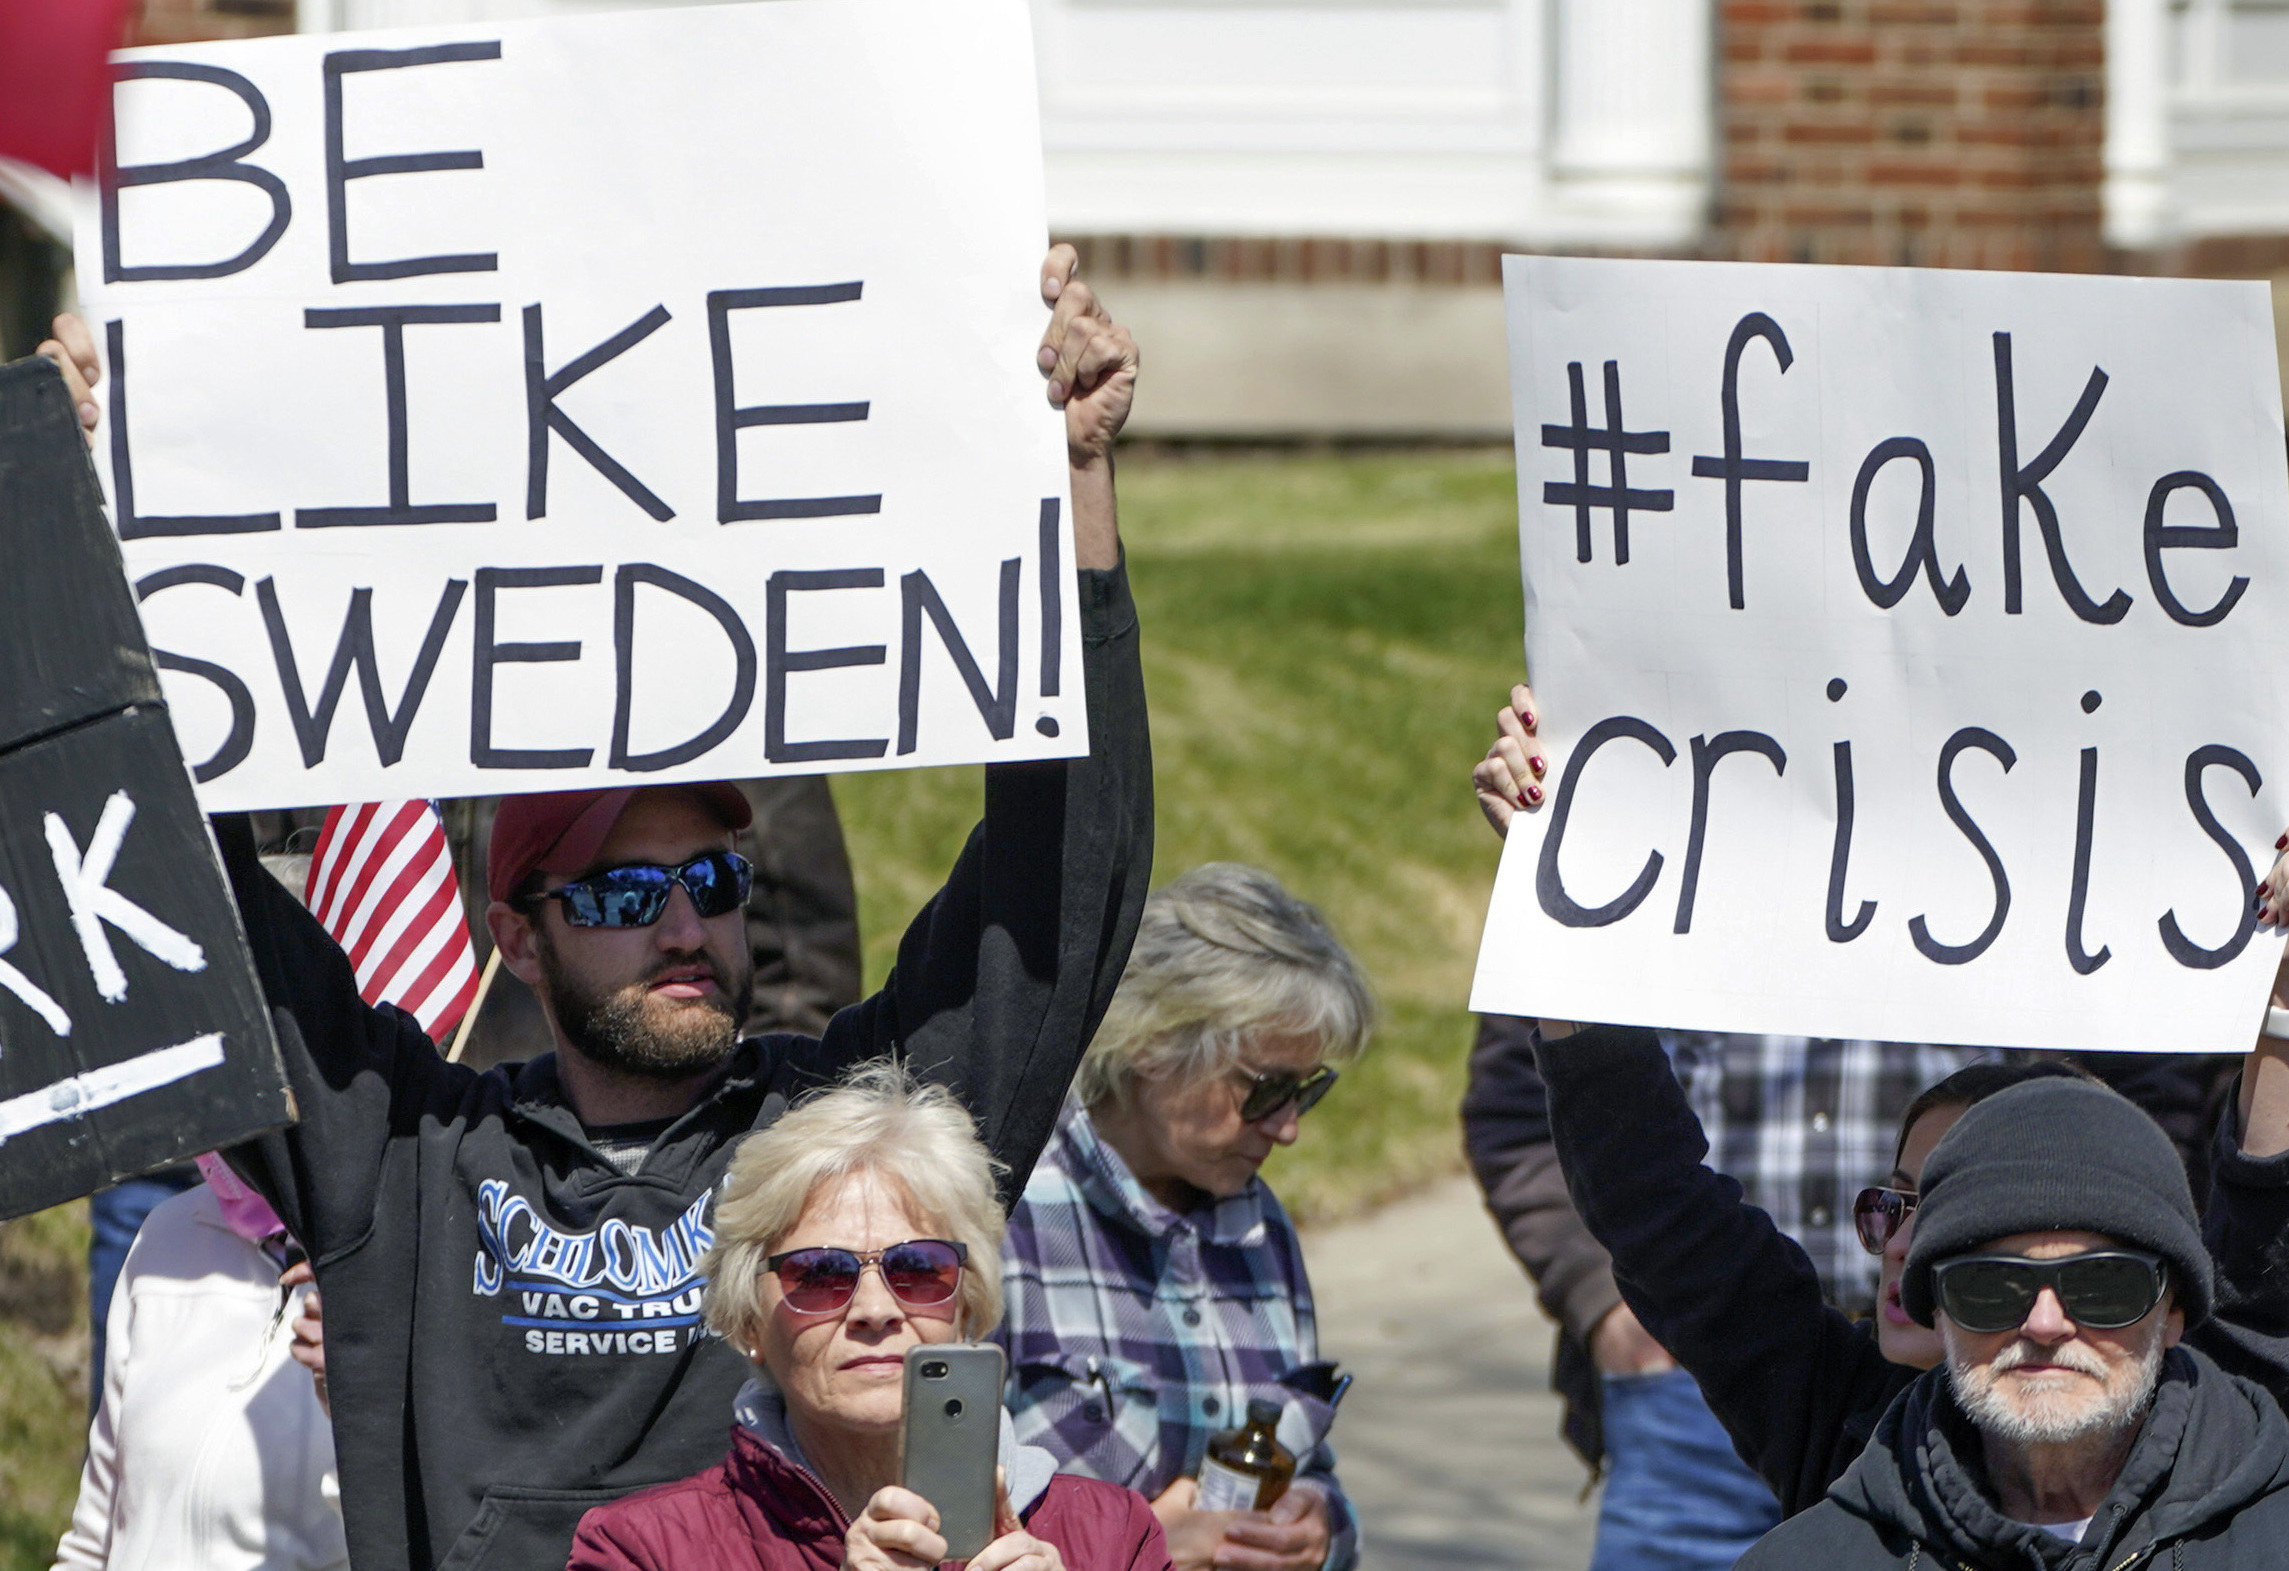 """A man holding up a sign reading, """"Be like Sweden!"""" and another man with a sign reading, """"#fake crisis"""""""